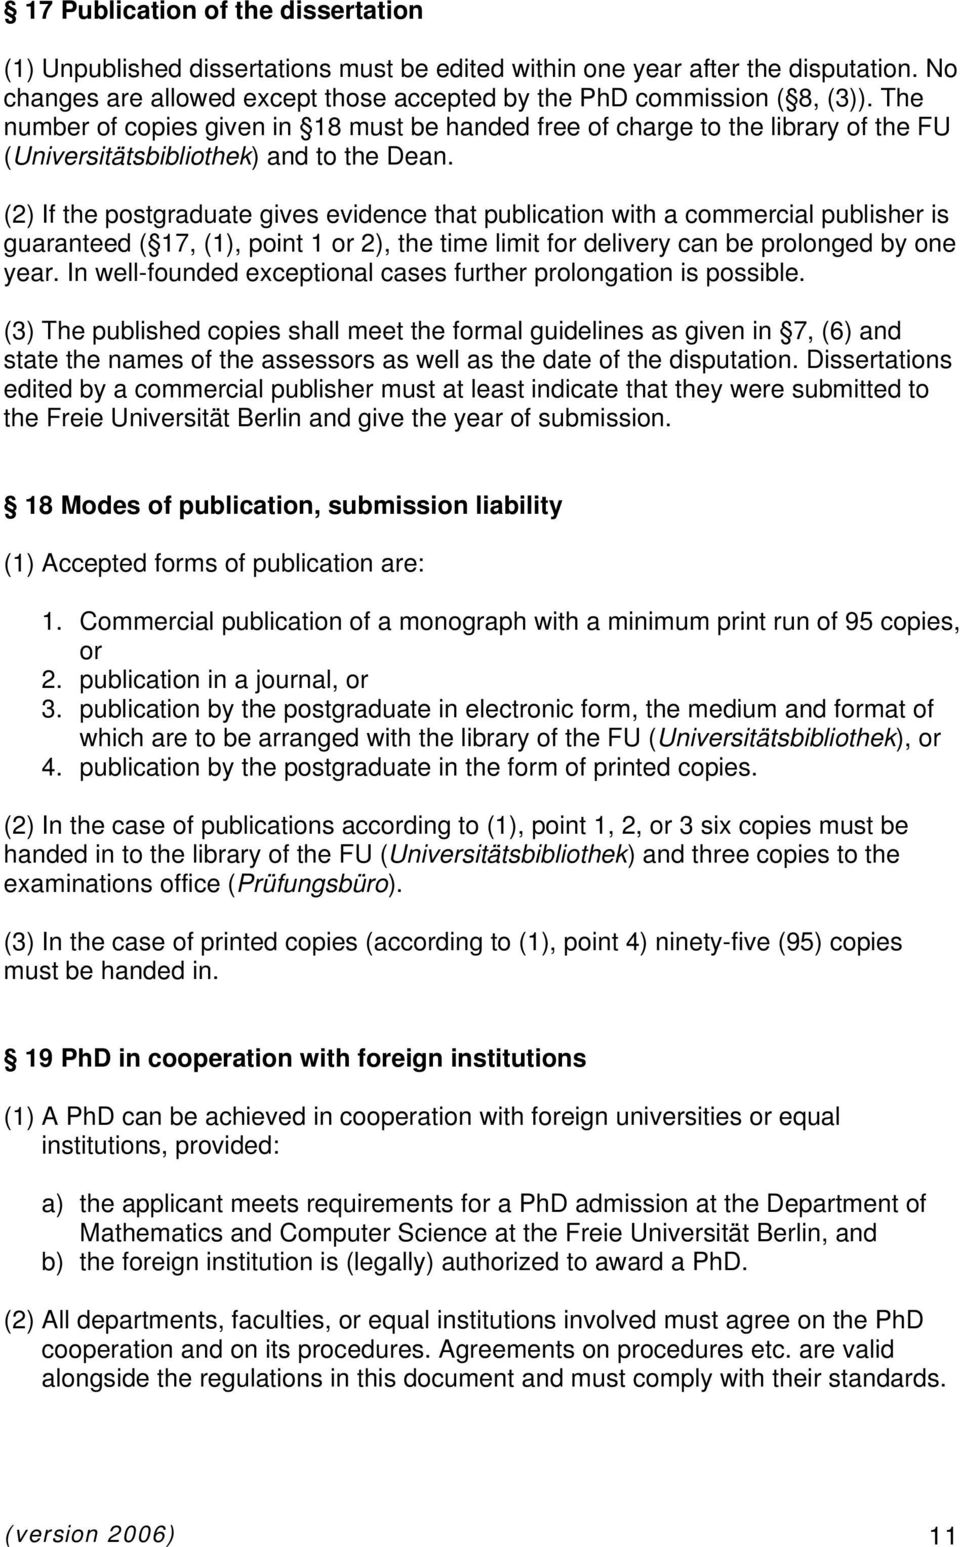 (2) If the postgraduate gives evidence that publication with a commercial publisher is guaranteed ( 17, (1), point 1 or 2), the time limit for delivery can be prolonged by one year.